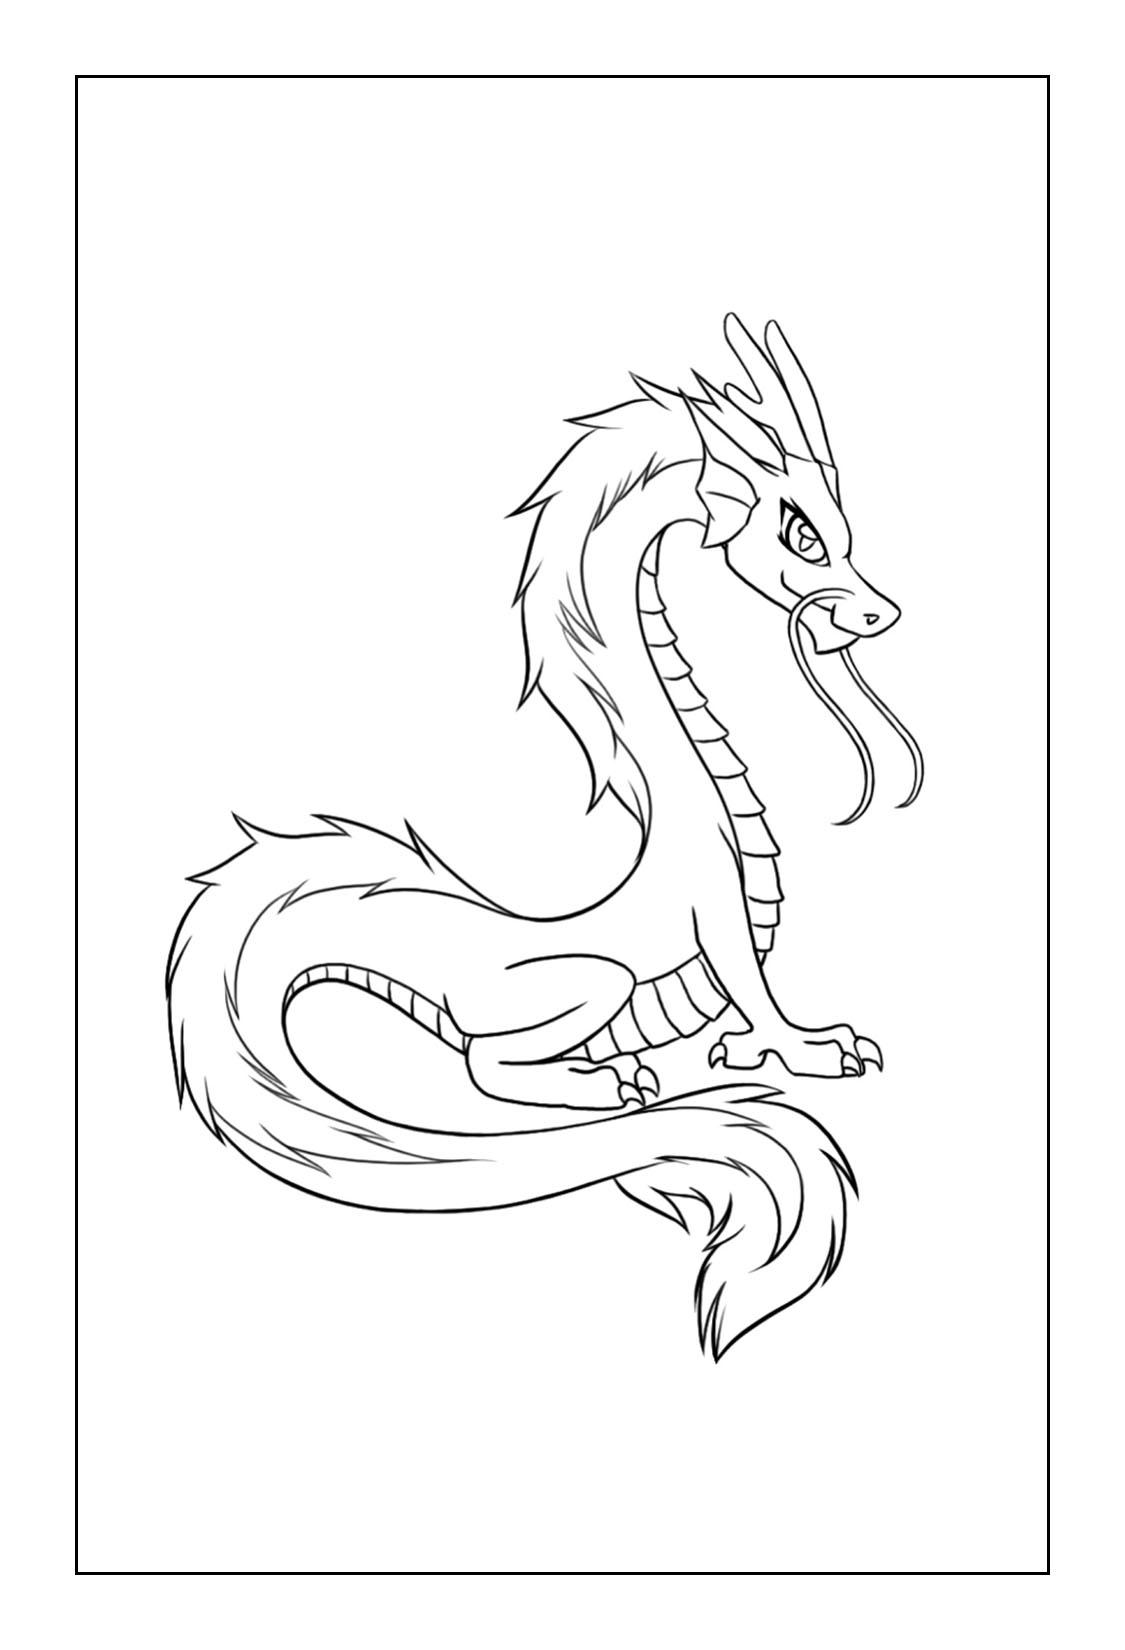 Dragon Coloring Pages – coloring.rocks!